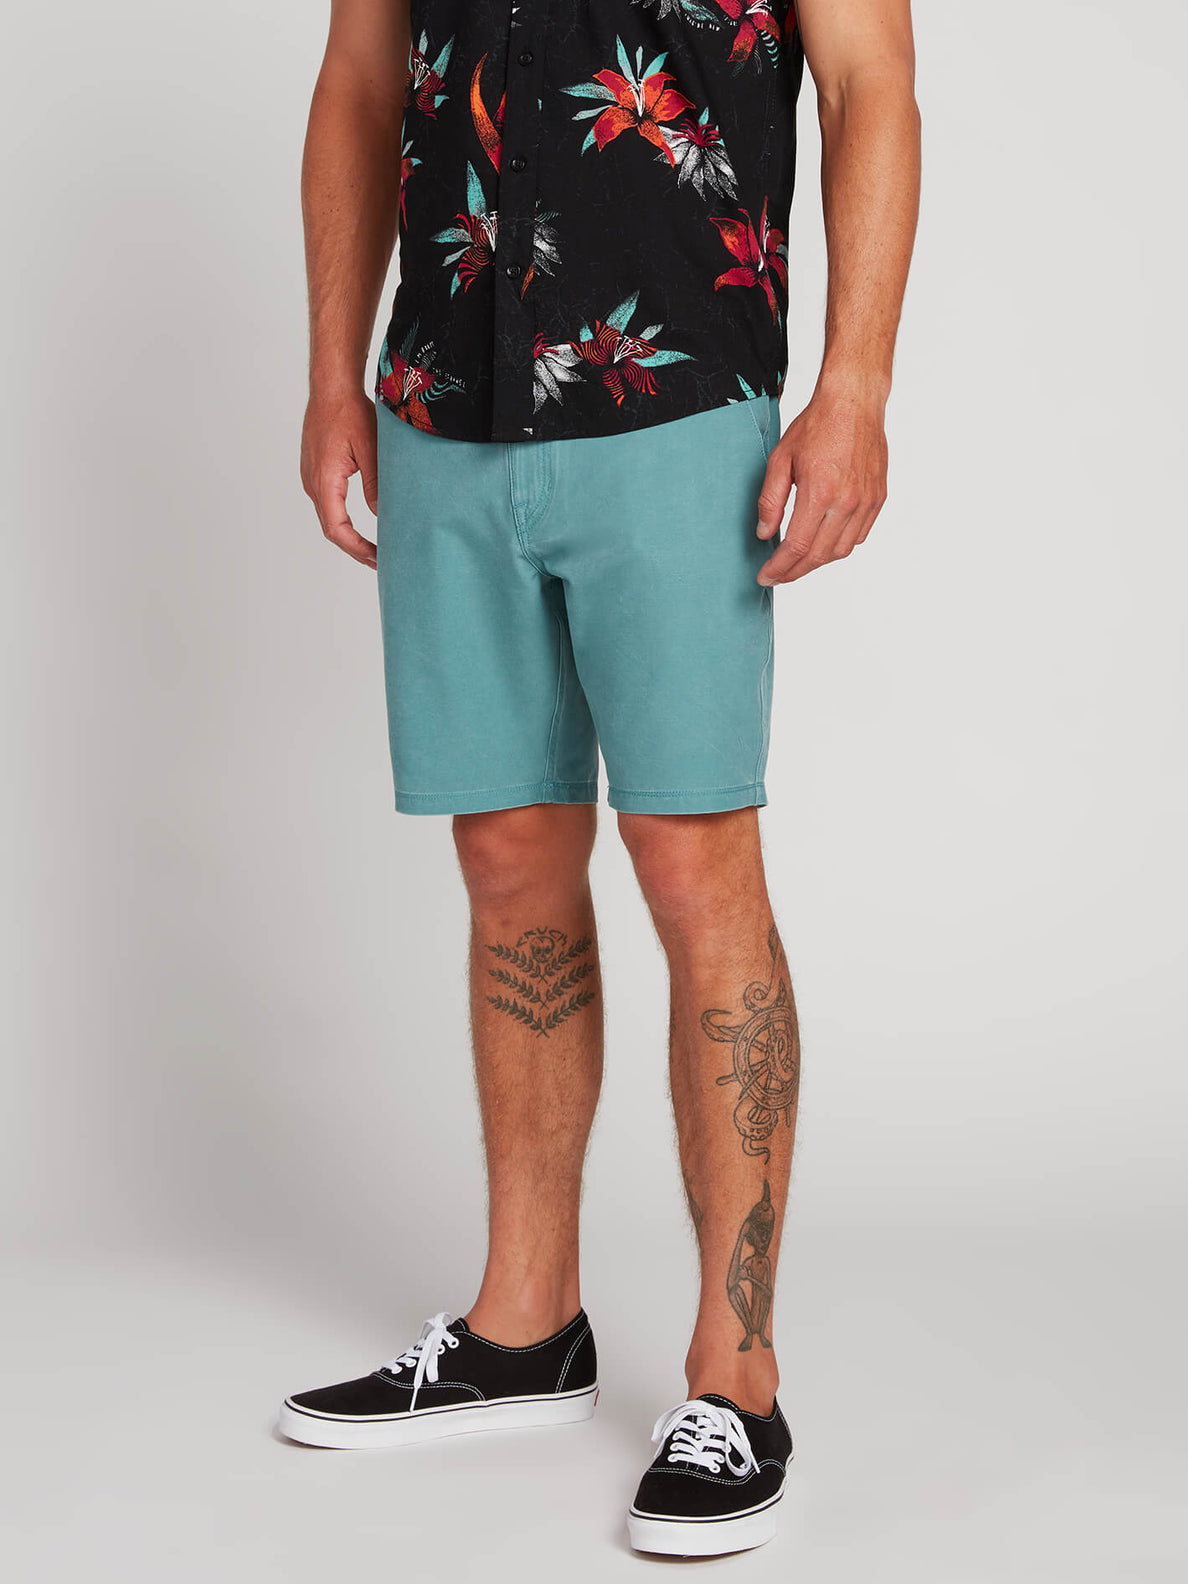 Surf N' Turf Faded Hybrid Shorts - Agave (A3211903_AGV) [1]